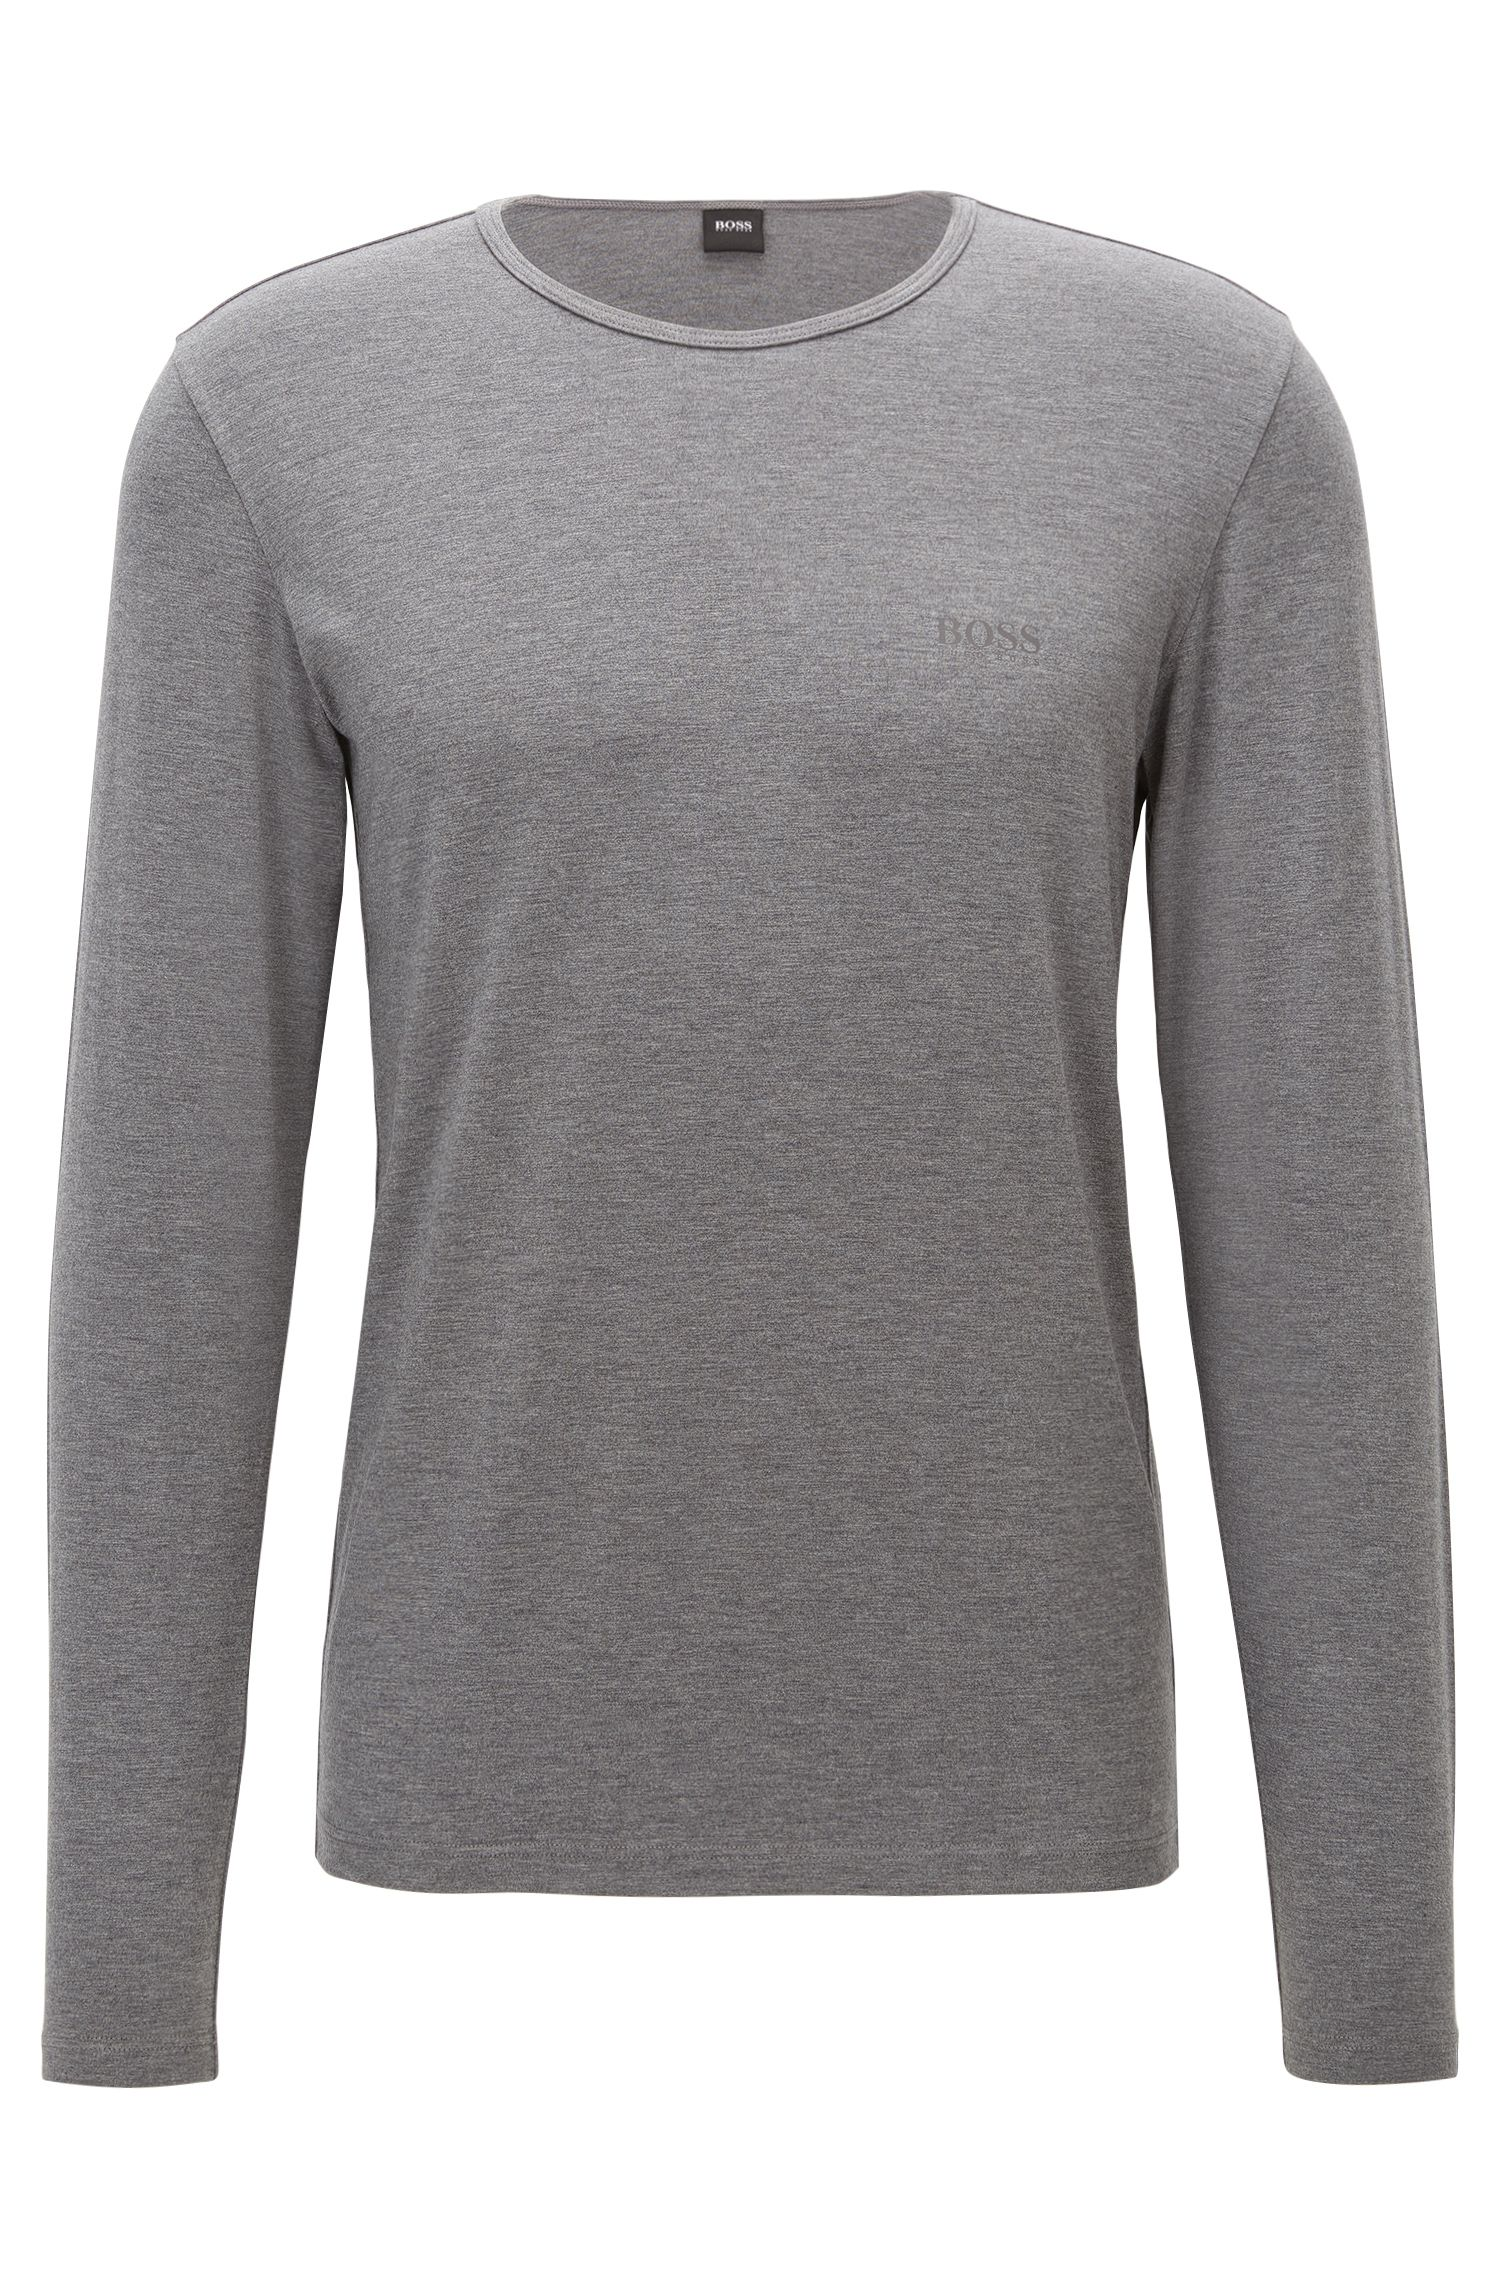 Stretch Thermal Long Sleeve T-Shirt | LS Shirt RN Thermal